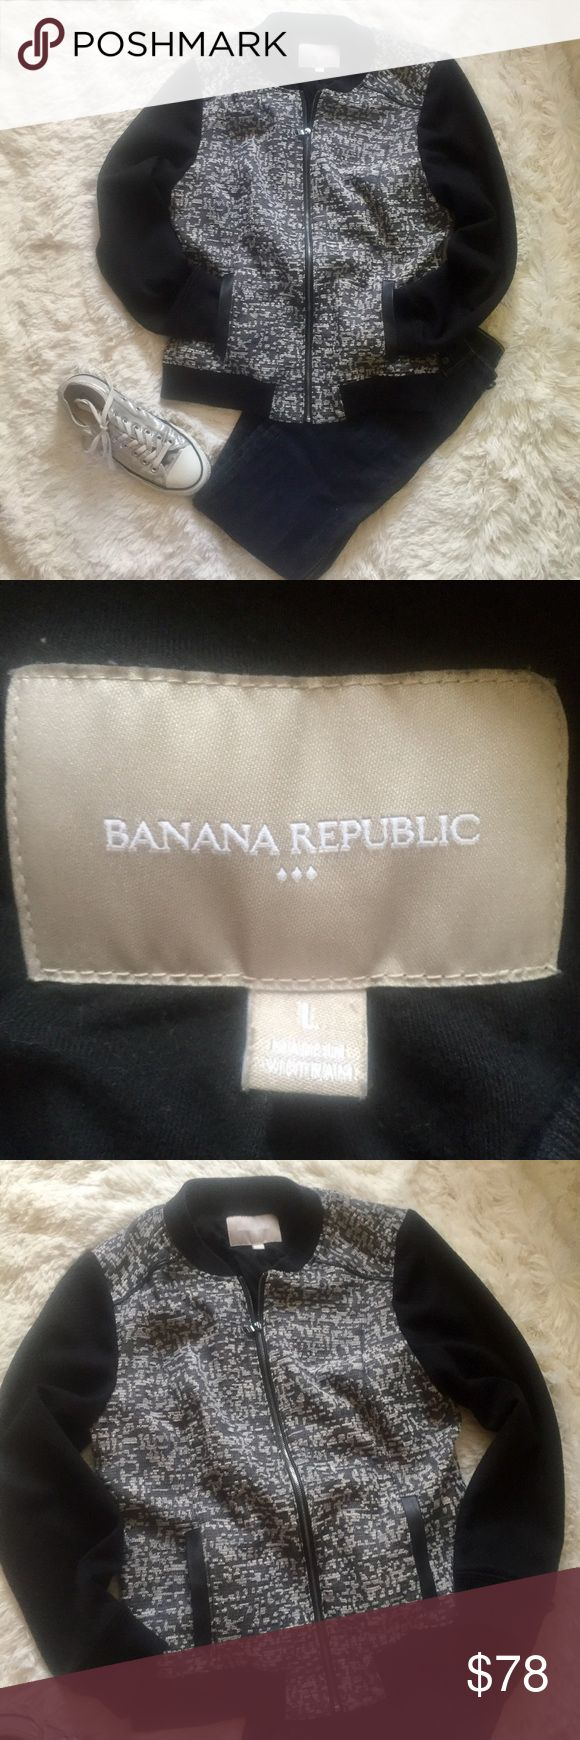 "Banana Republic Black Bomber Lace Detail Large Banana Republic black bomber jacket size large. In excellent condition! On trend Lace looking detail covers center of the jackets. Fully lined inside with extremely soft cotton. Faux leather detail on pockets. Measurements: 18"" pit to pit, 23"" length, 23.5"" sleeves. Reasonable offers always accepted. Banana Republic Jackets & Coats"